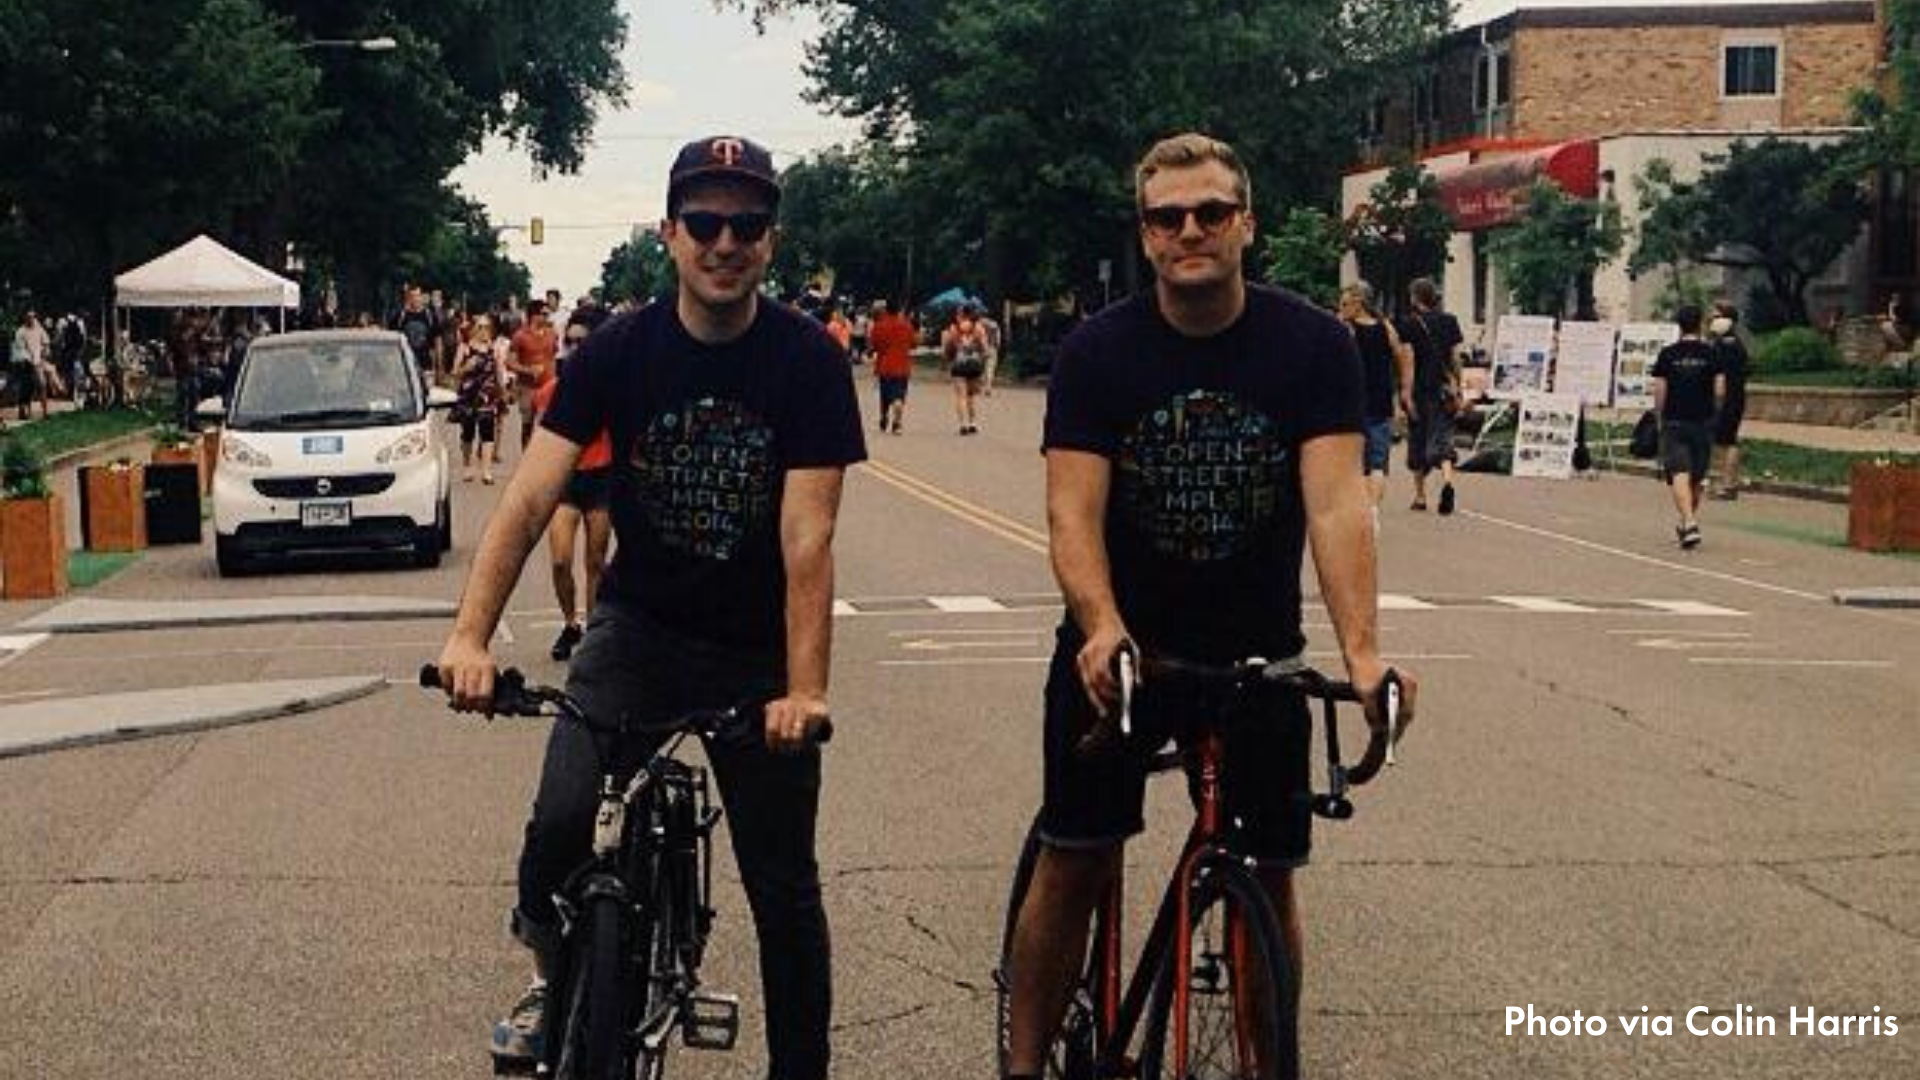 Colin (left) and Ben at Open Streets Lyndale